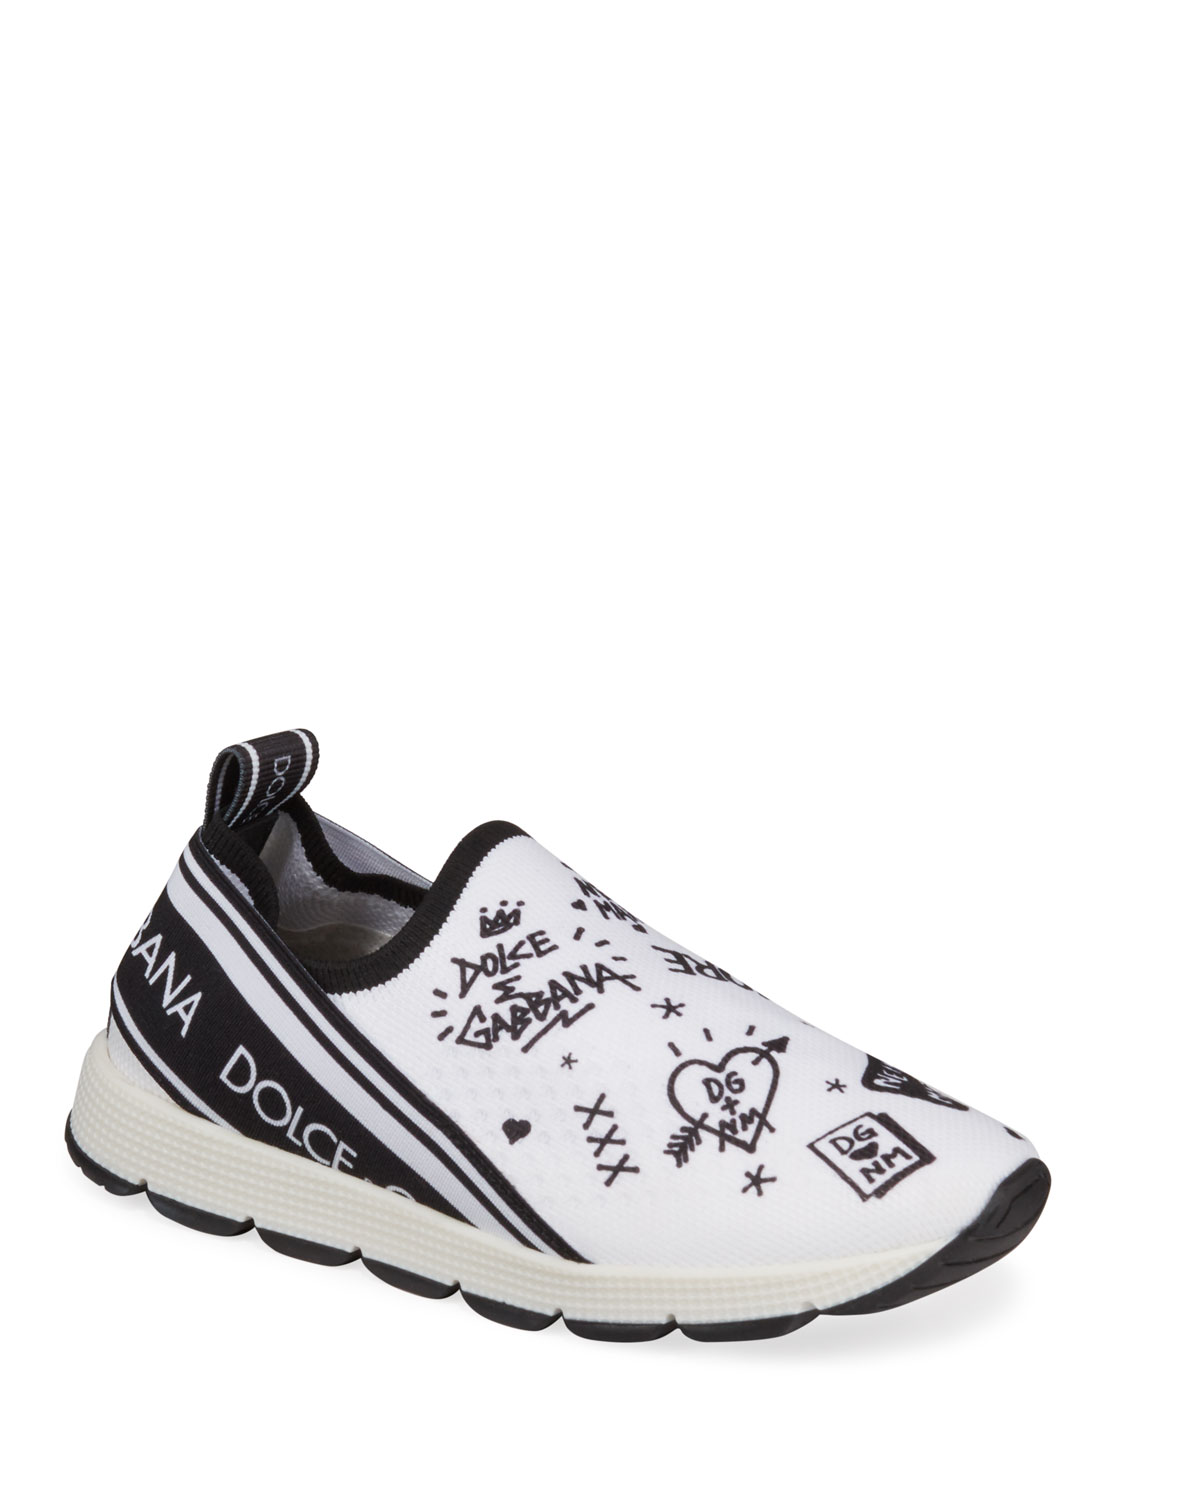 Dolce & Gabbana Sneakers DG + NM MAGLINA SLIP-ON KNIT LOGO-PATCH SNEAKERS, TODDLER